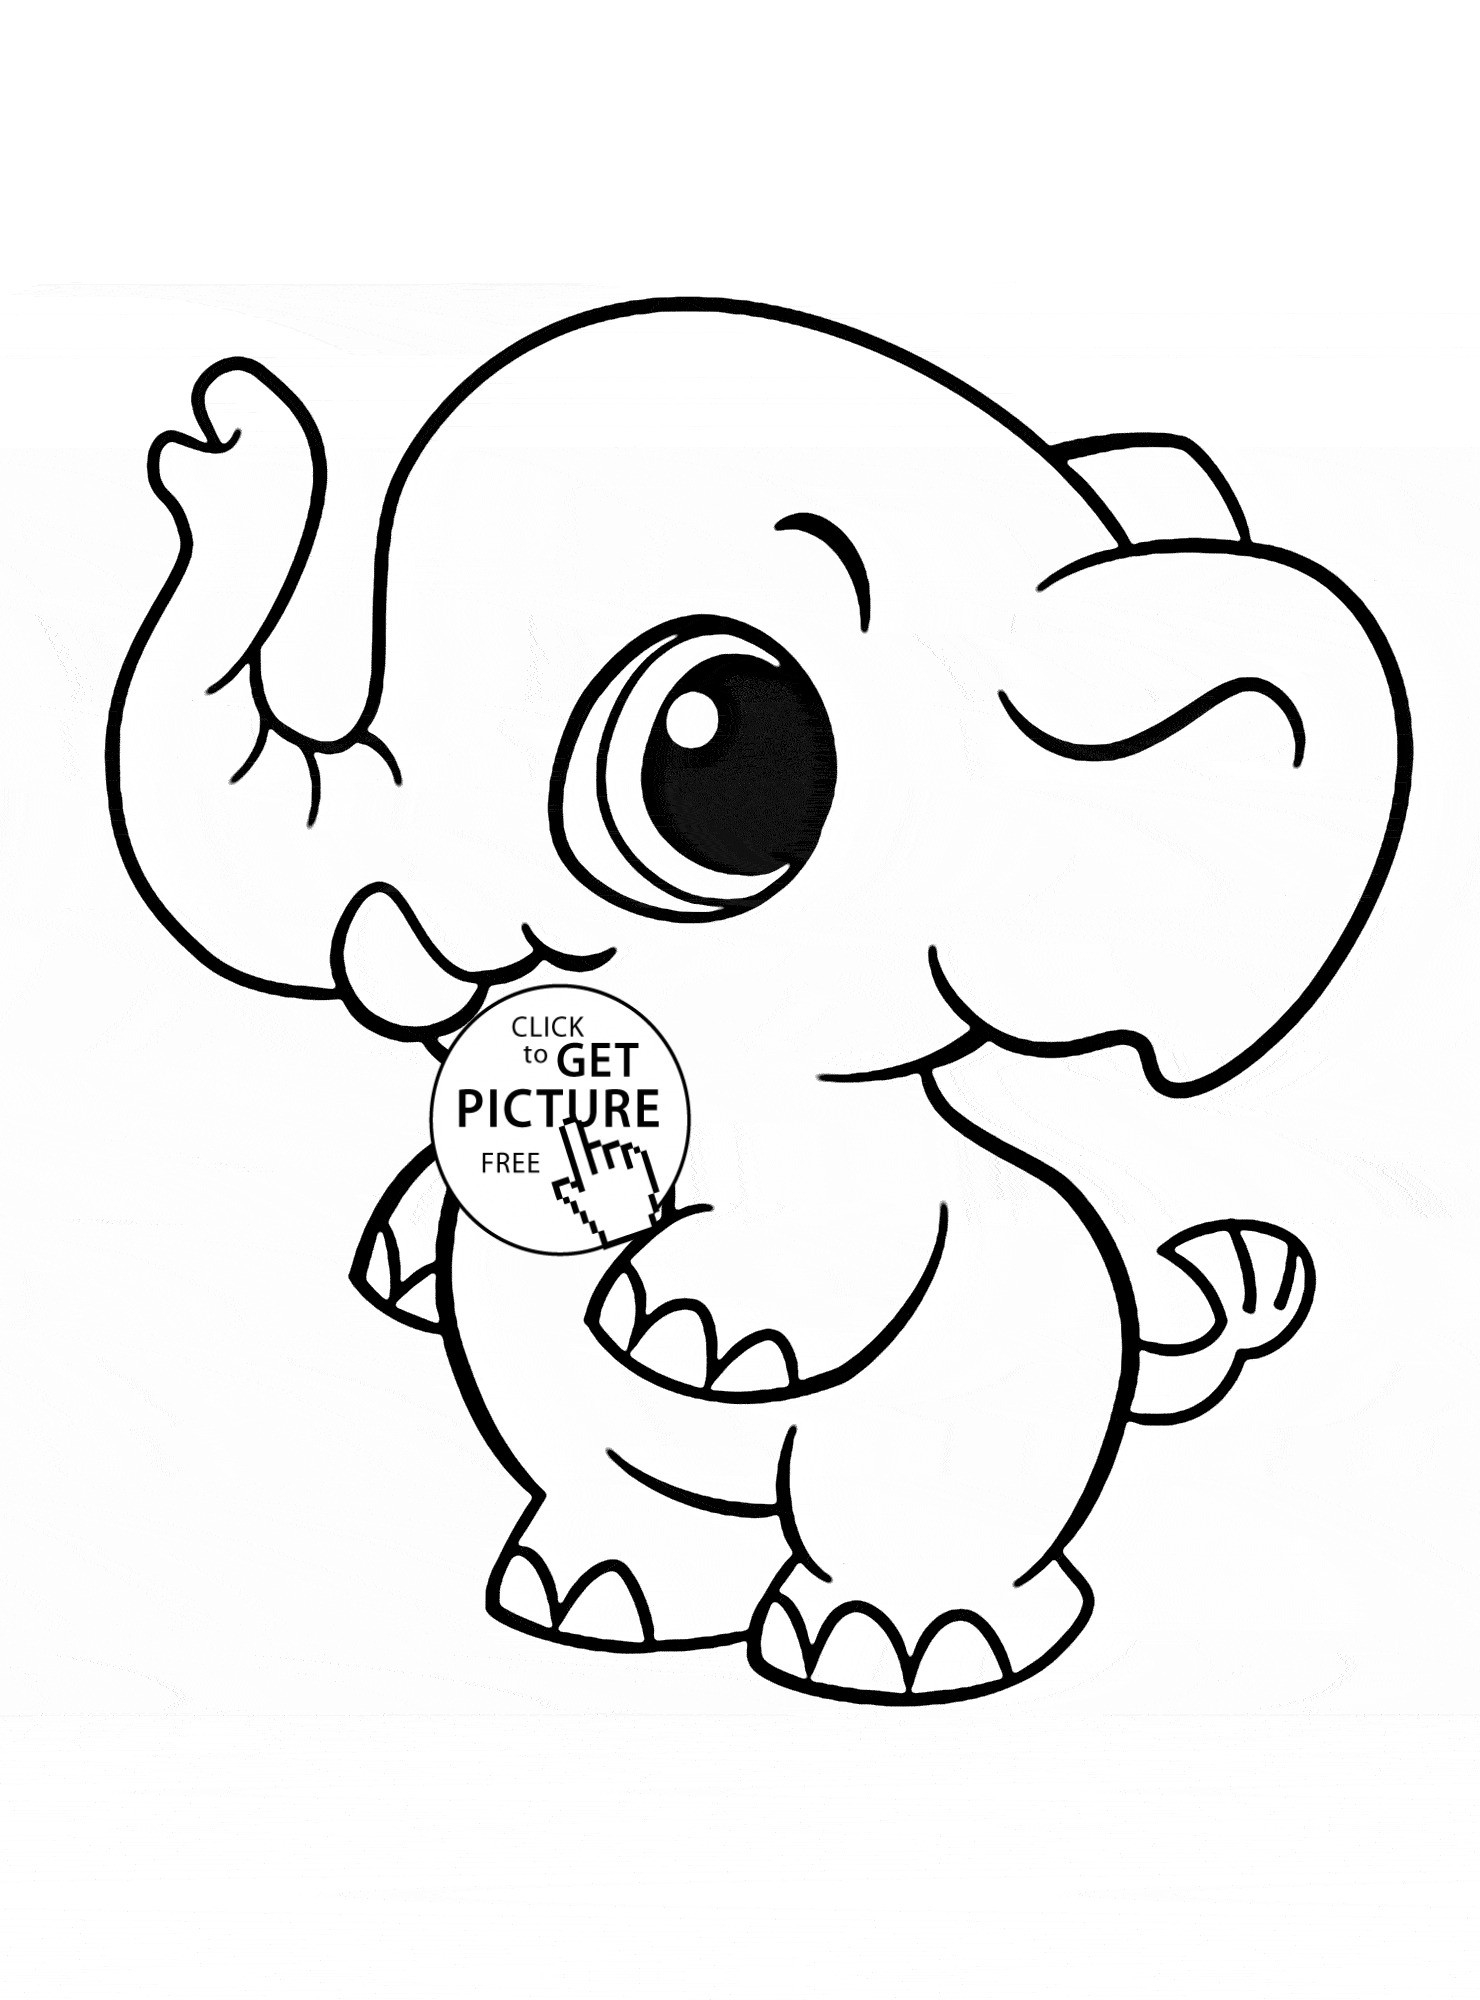 Cartoon Puppy Coloring Pages  to Print 18m - Free For kids